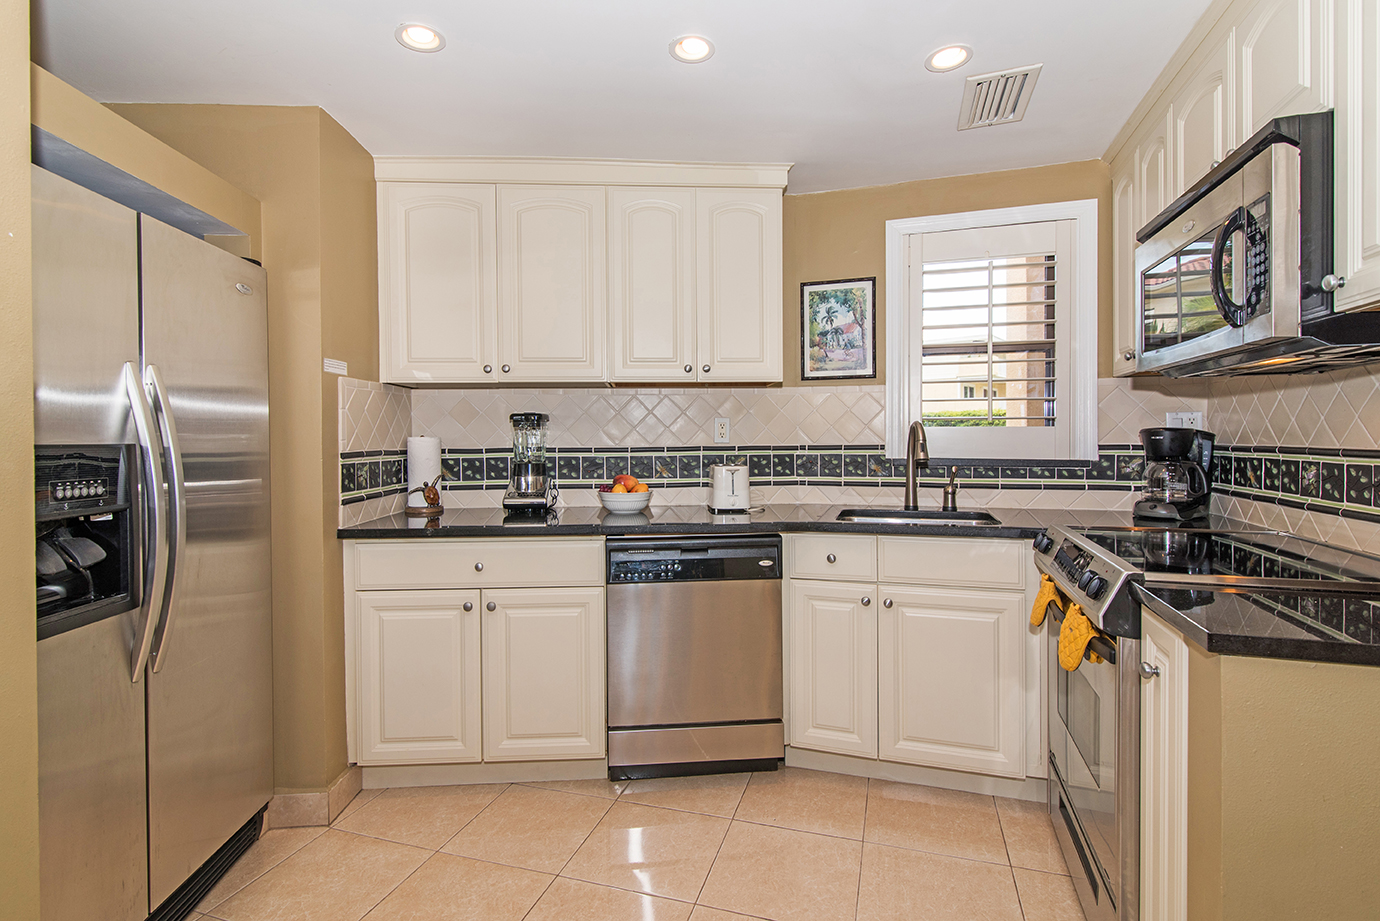 Georgtown Villas #113 Fully Equipped Kitchen